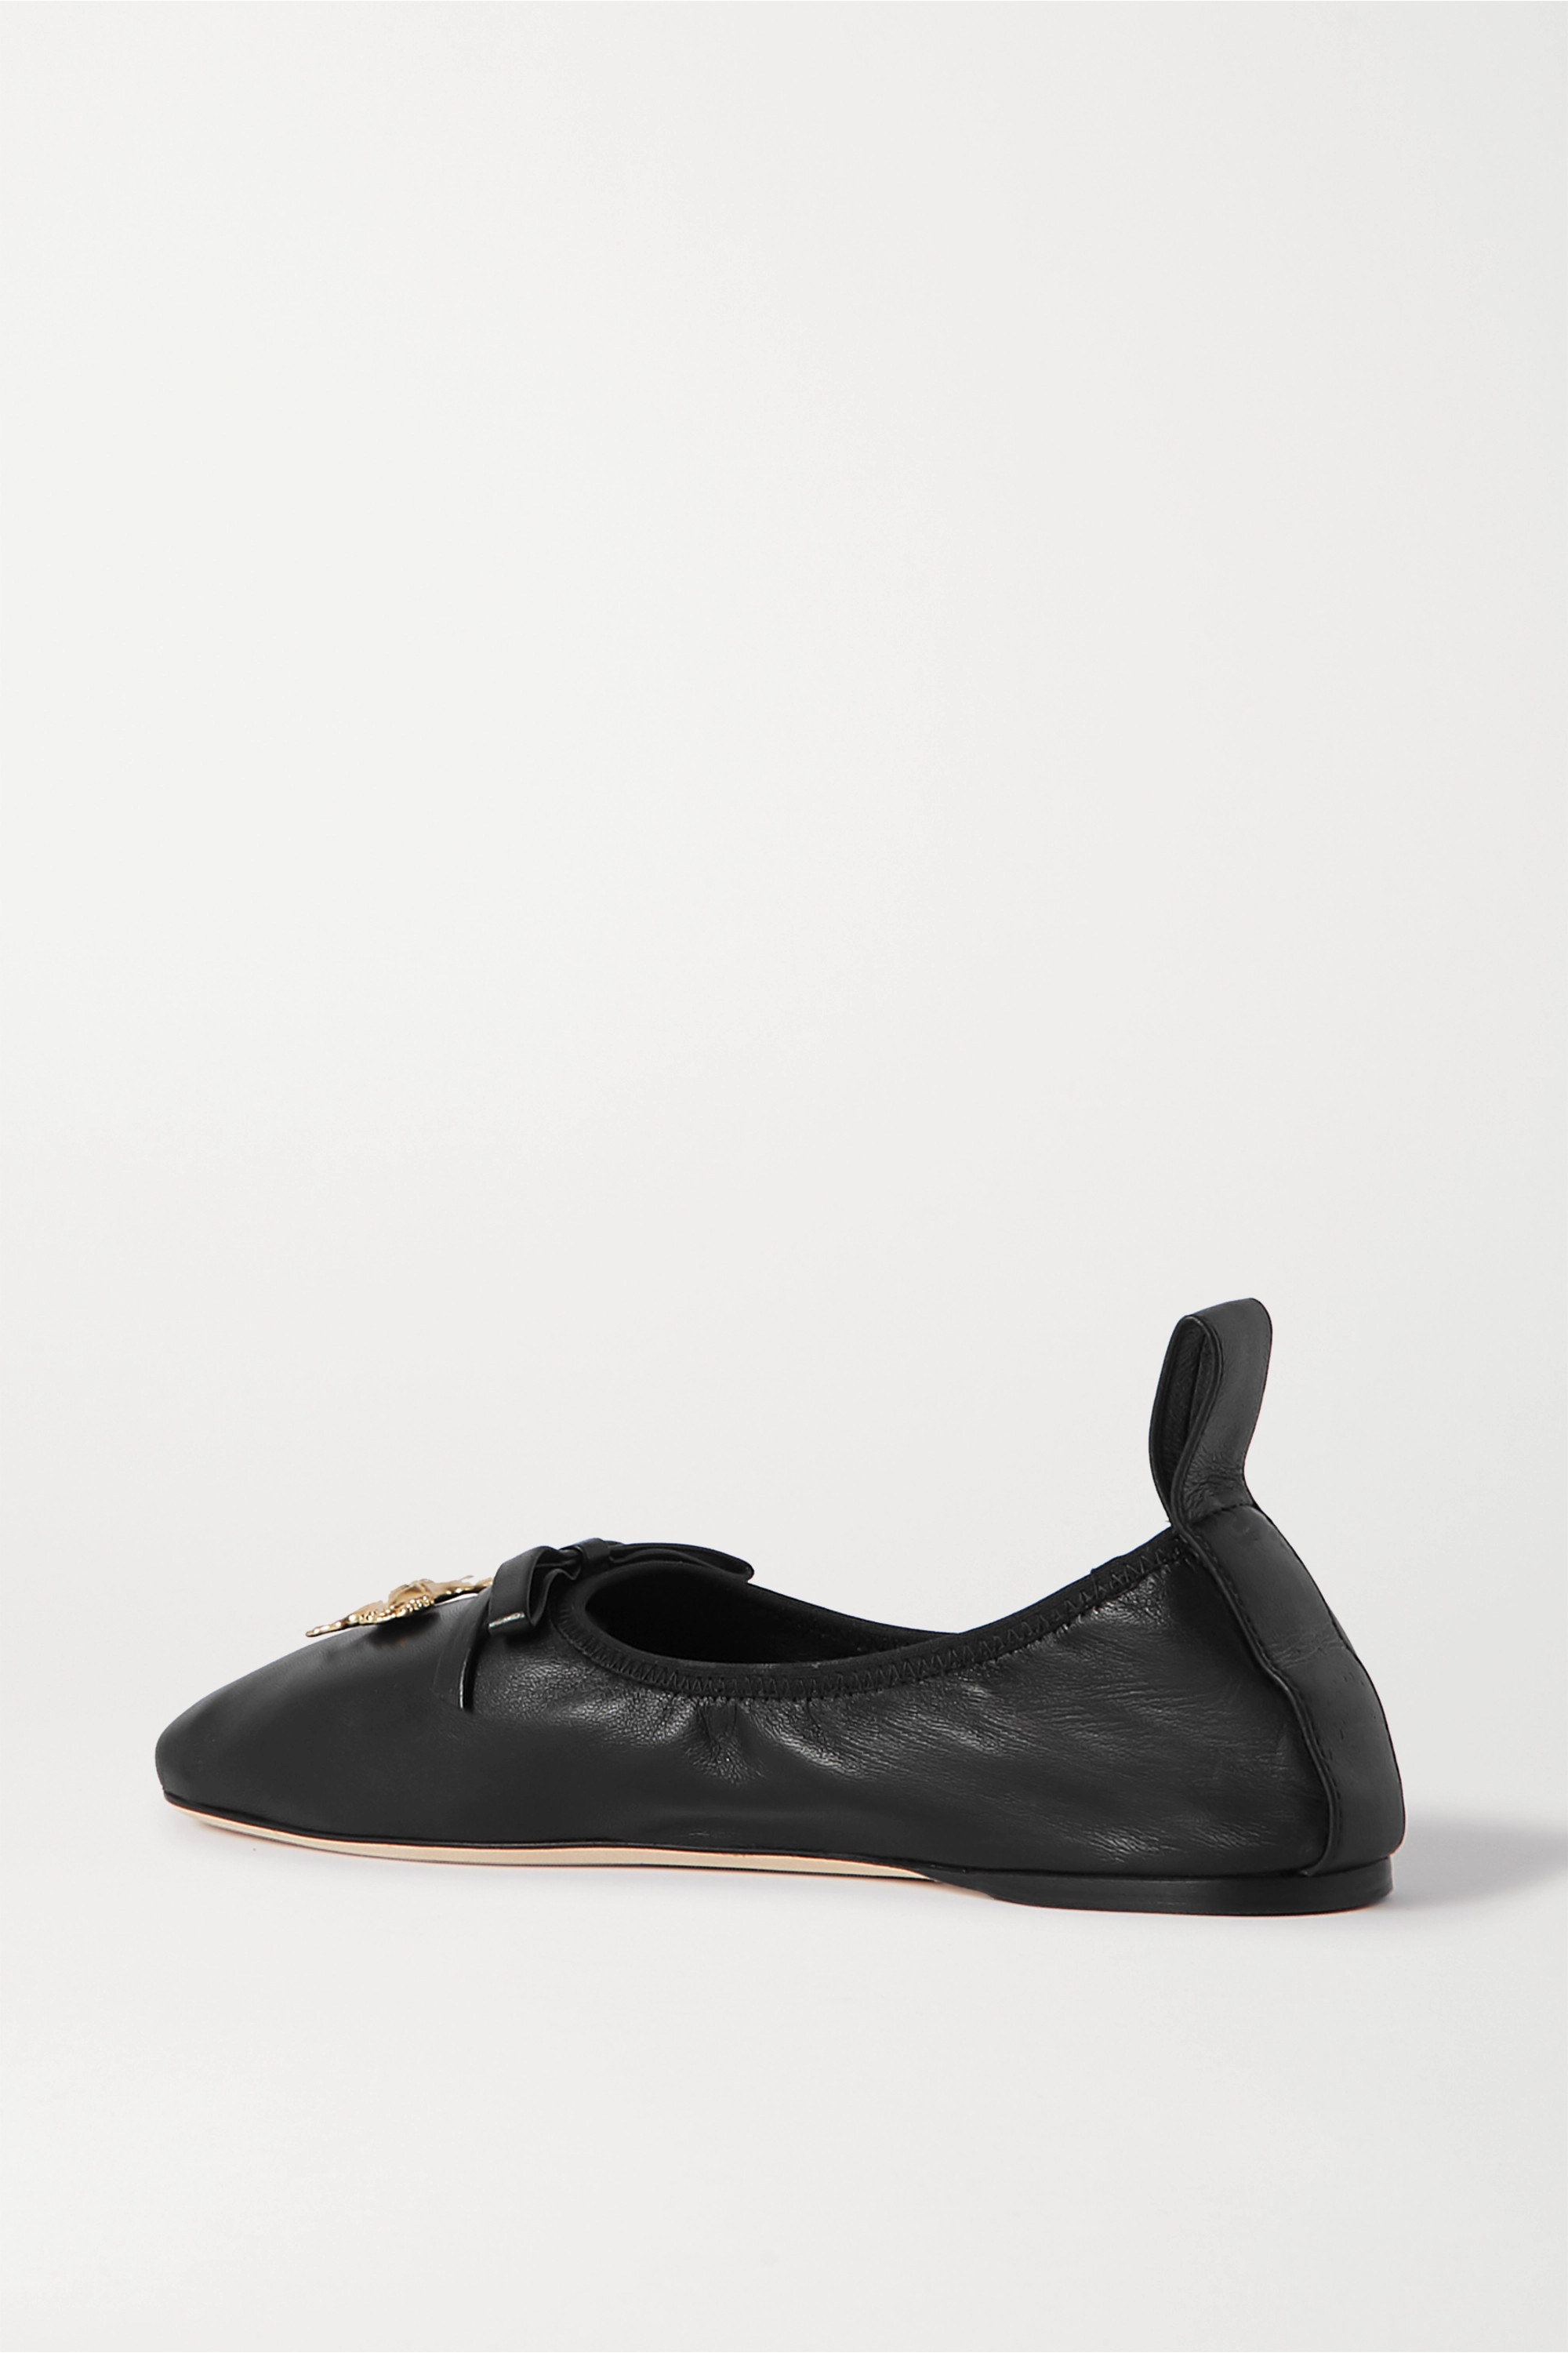 Loewe Embellished leather ballet flats